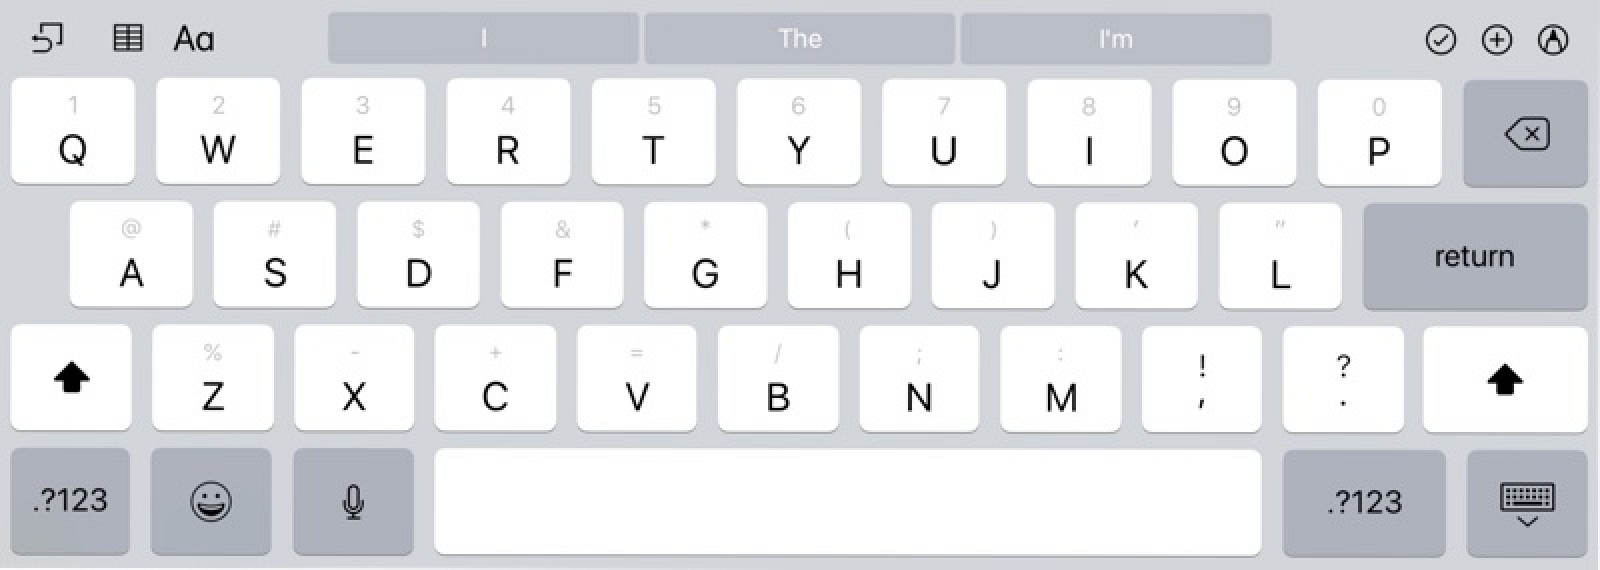 How to use the ipads new flick keyboard in ios 11 mac rumors buycottarizona Image collections